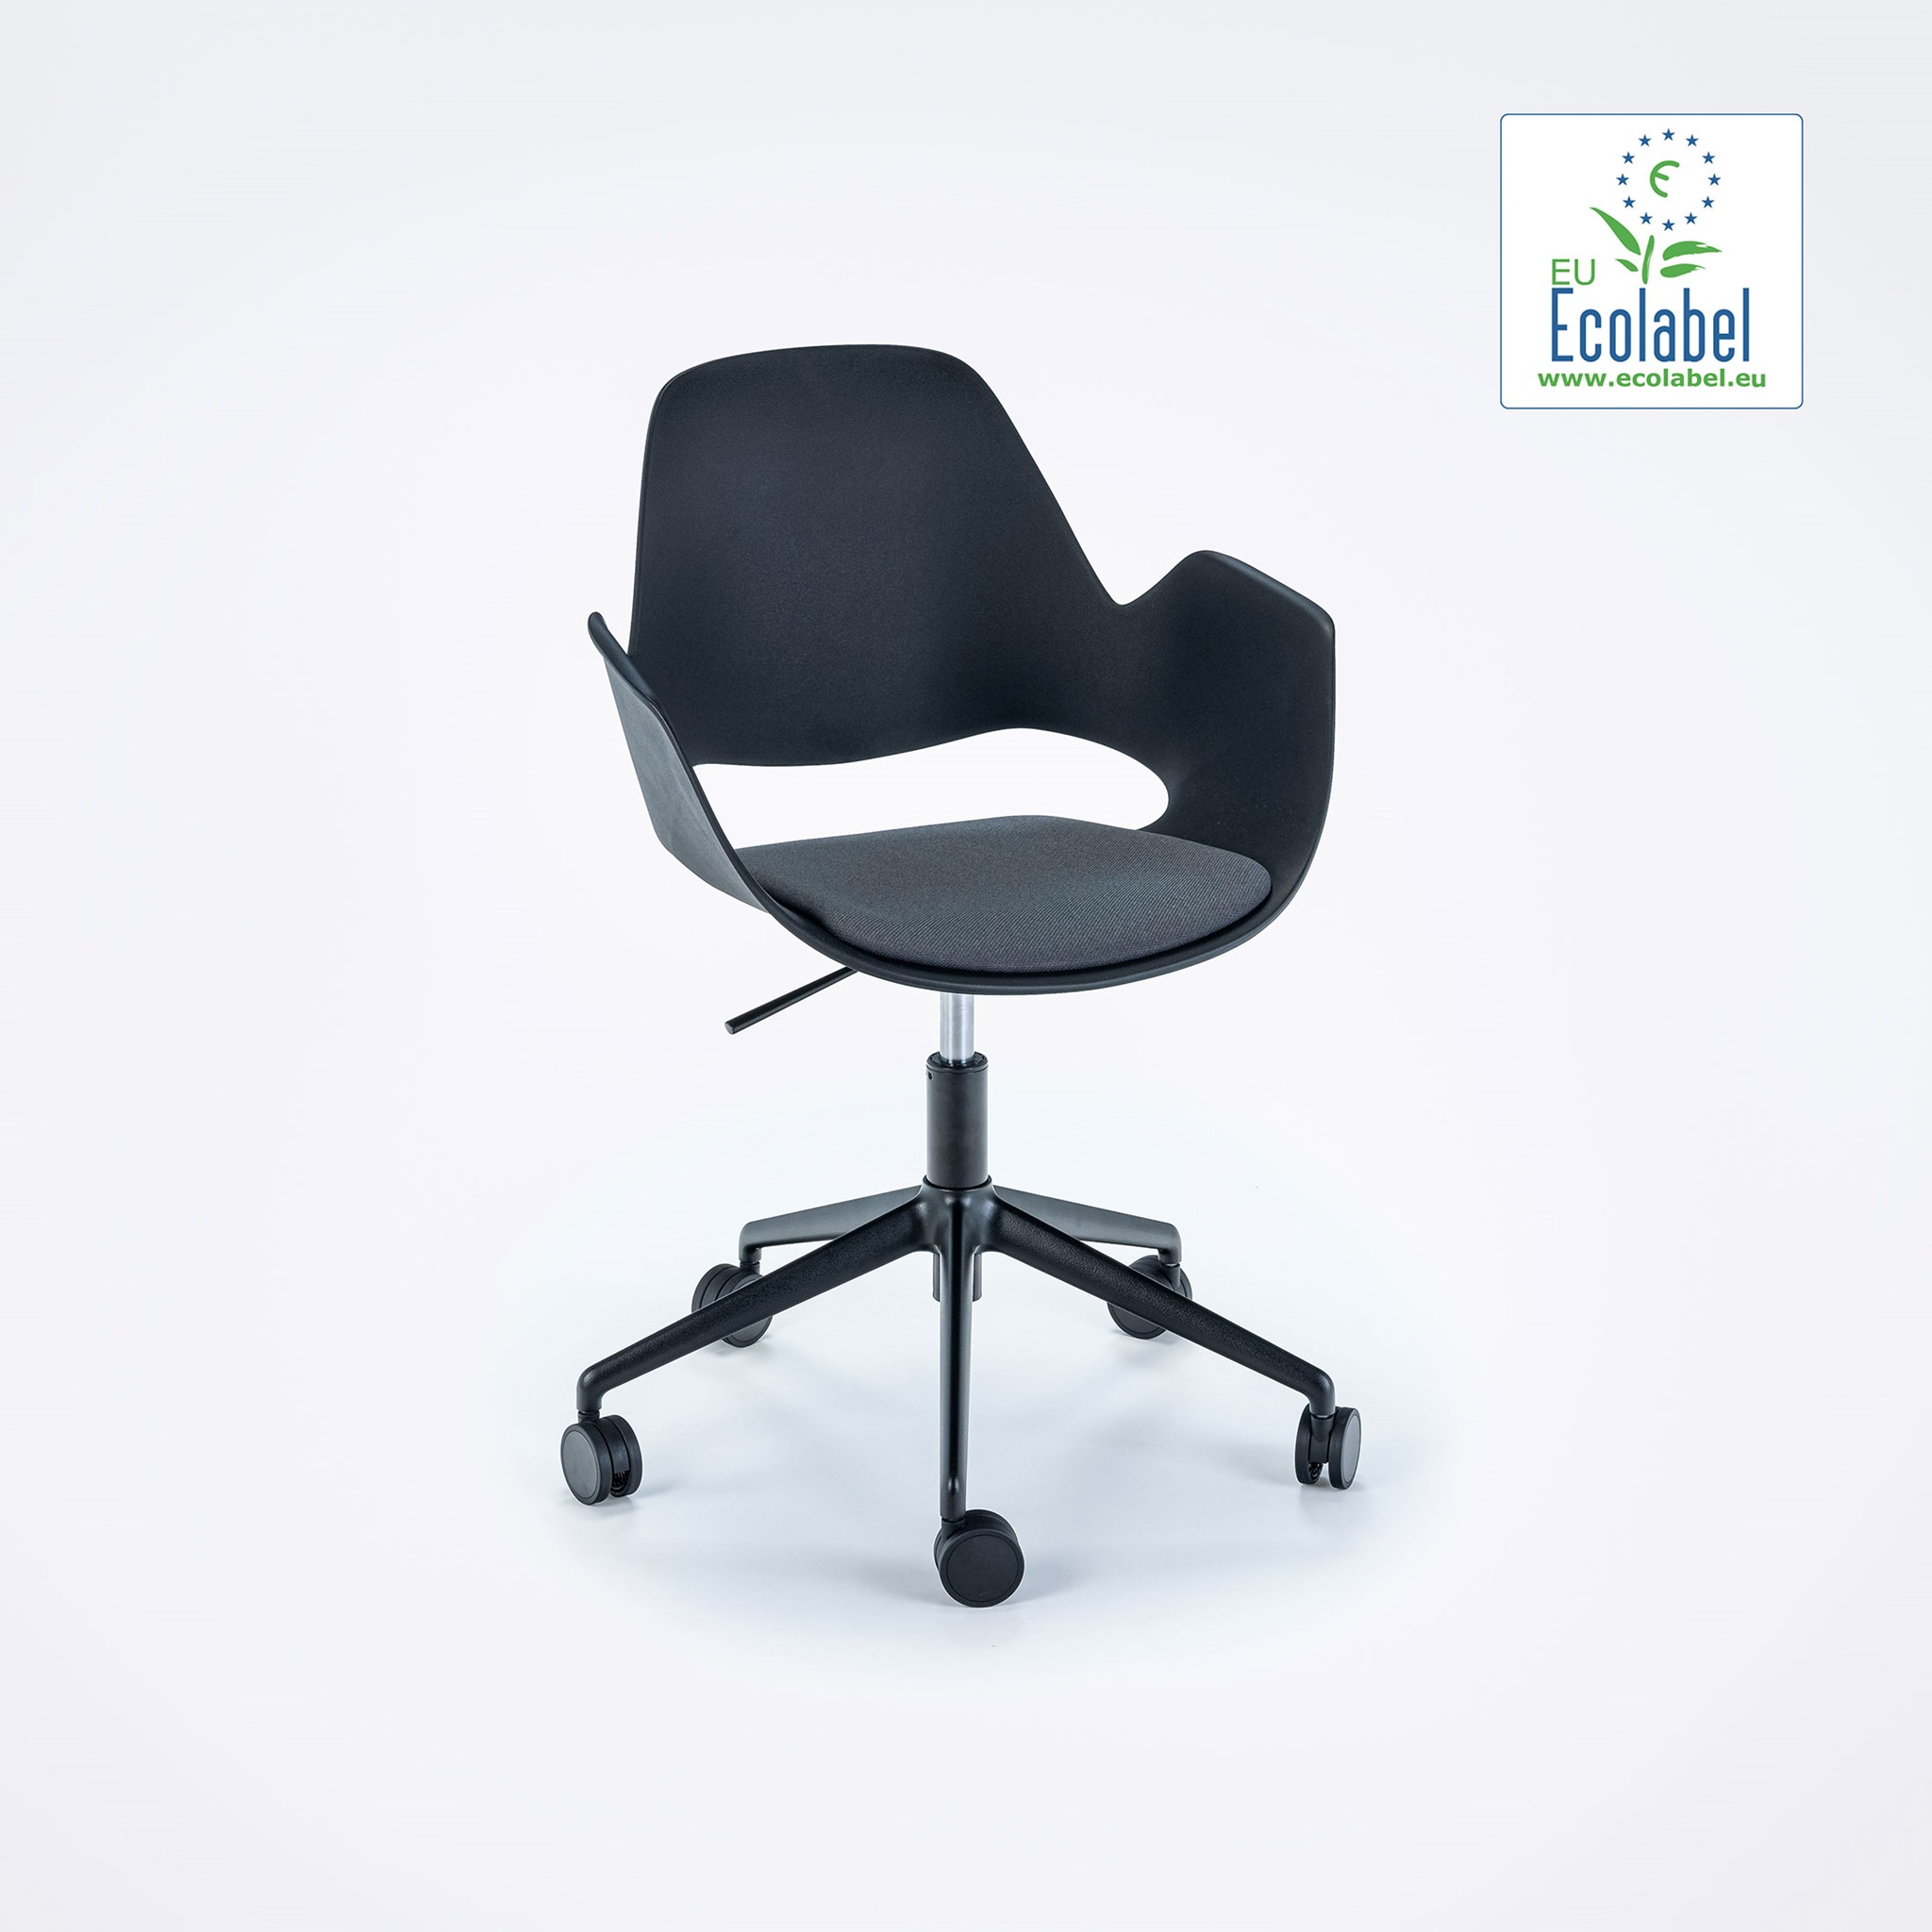 DINING ARMCHAIR // PADDED SEAT // Dark grey // castors // 5 star swivel base